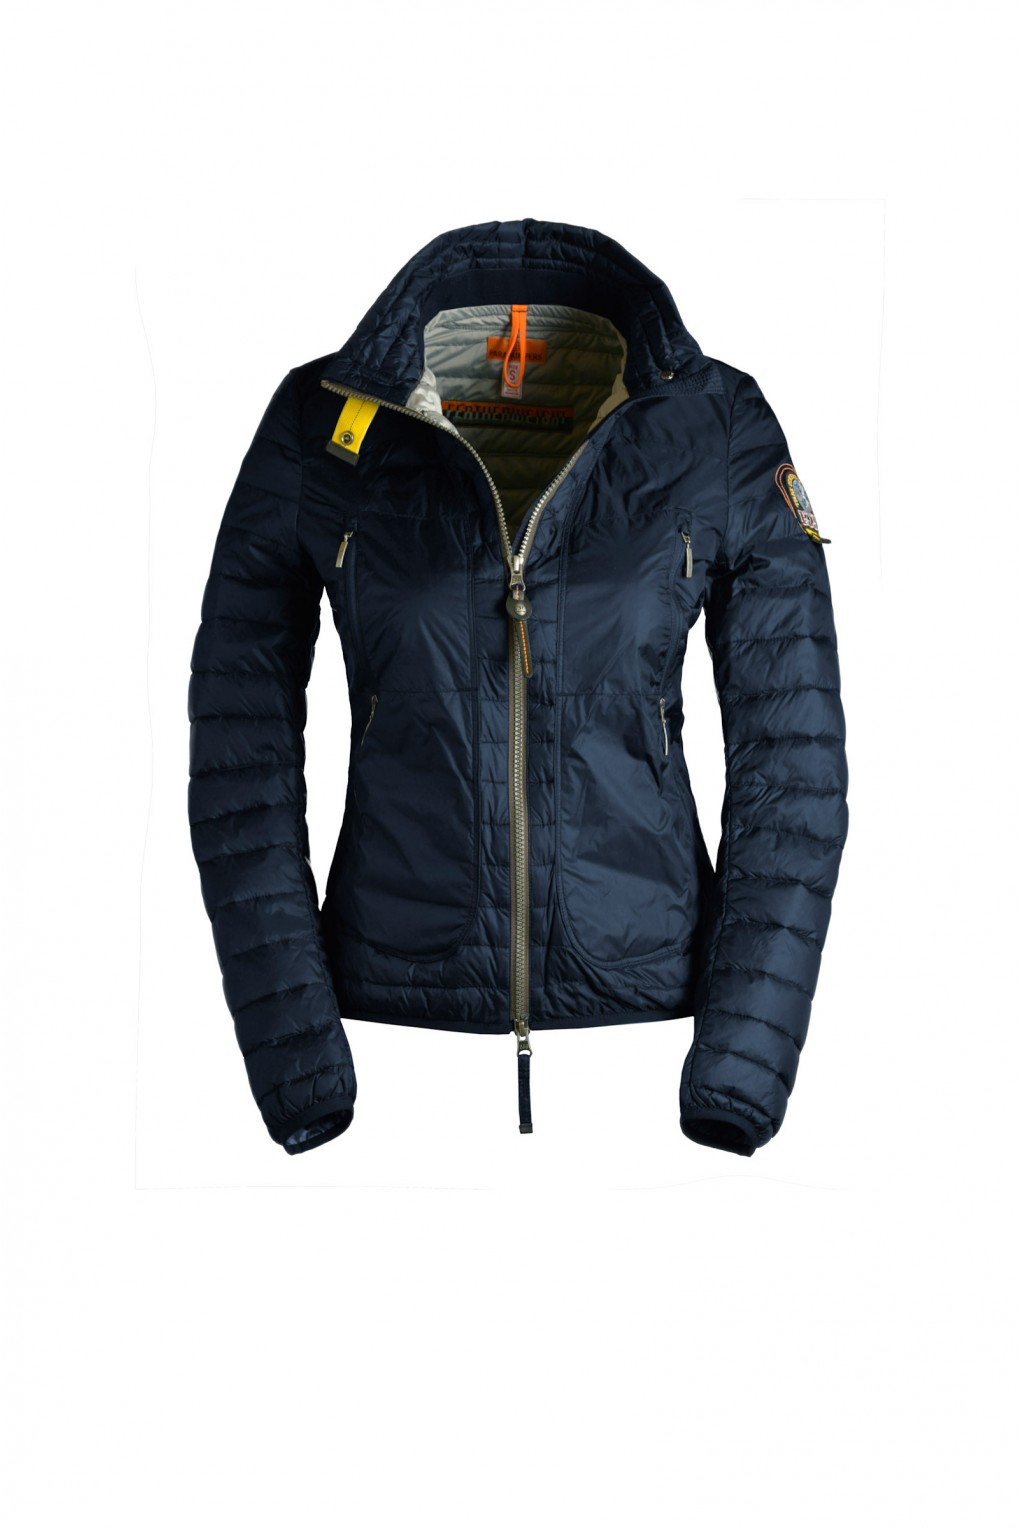 parajumpers GLORIA woman outerwear Marine